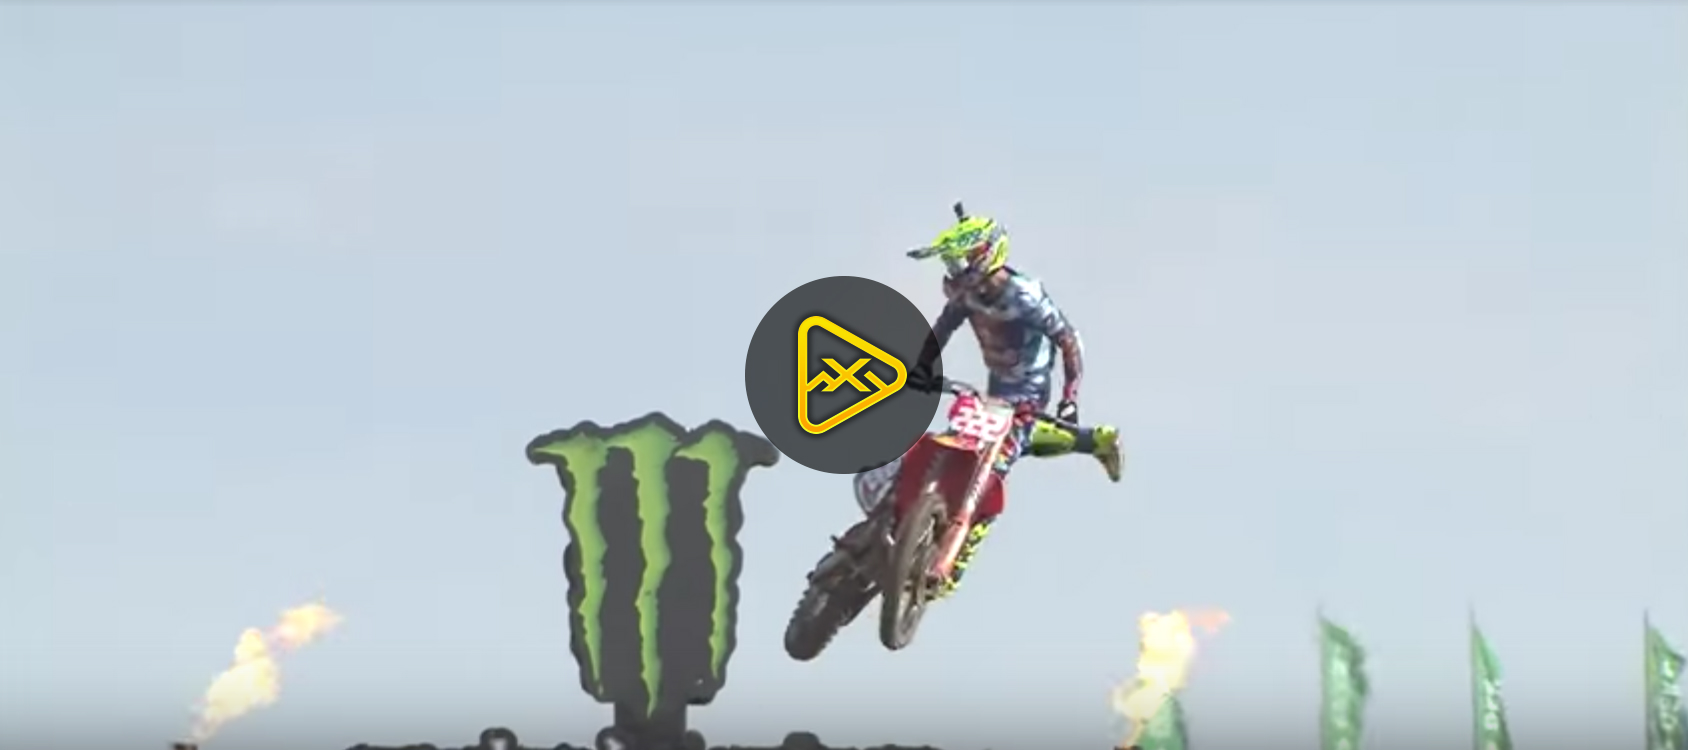 2017 MXGP of Germany Highlights